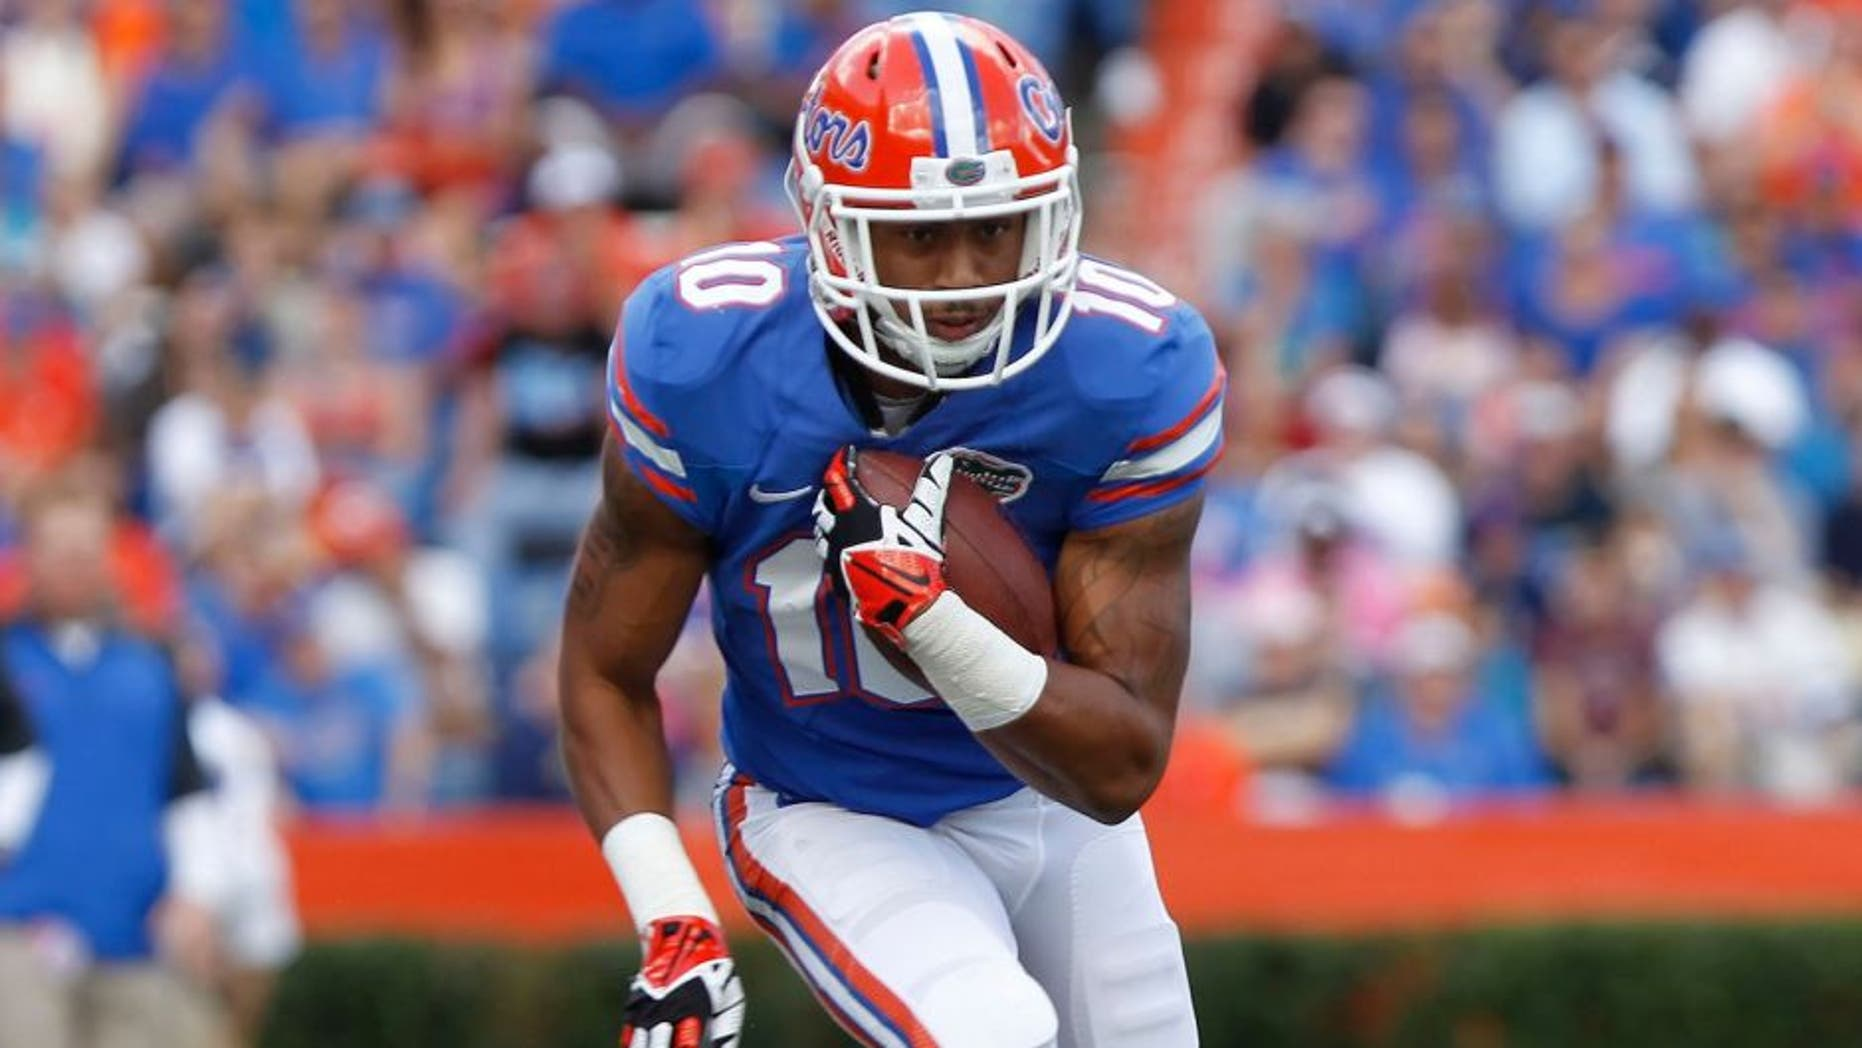 Nov 23, 2013; Gainesville, FL, USA; Florida Gators running back Valdez Showers (10) runs with the ball against the Georgia Southern Eagles during the first quarter at Ben Hill Griffin Stadium. Mandatory Credit: Kim Klement-USA TODAY Sports